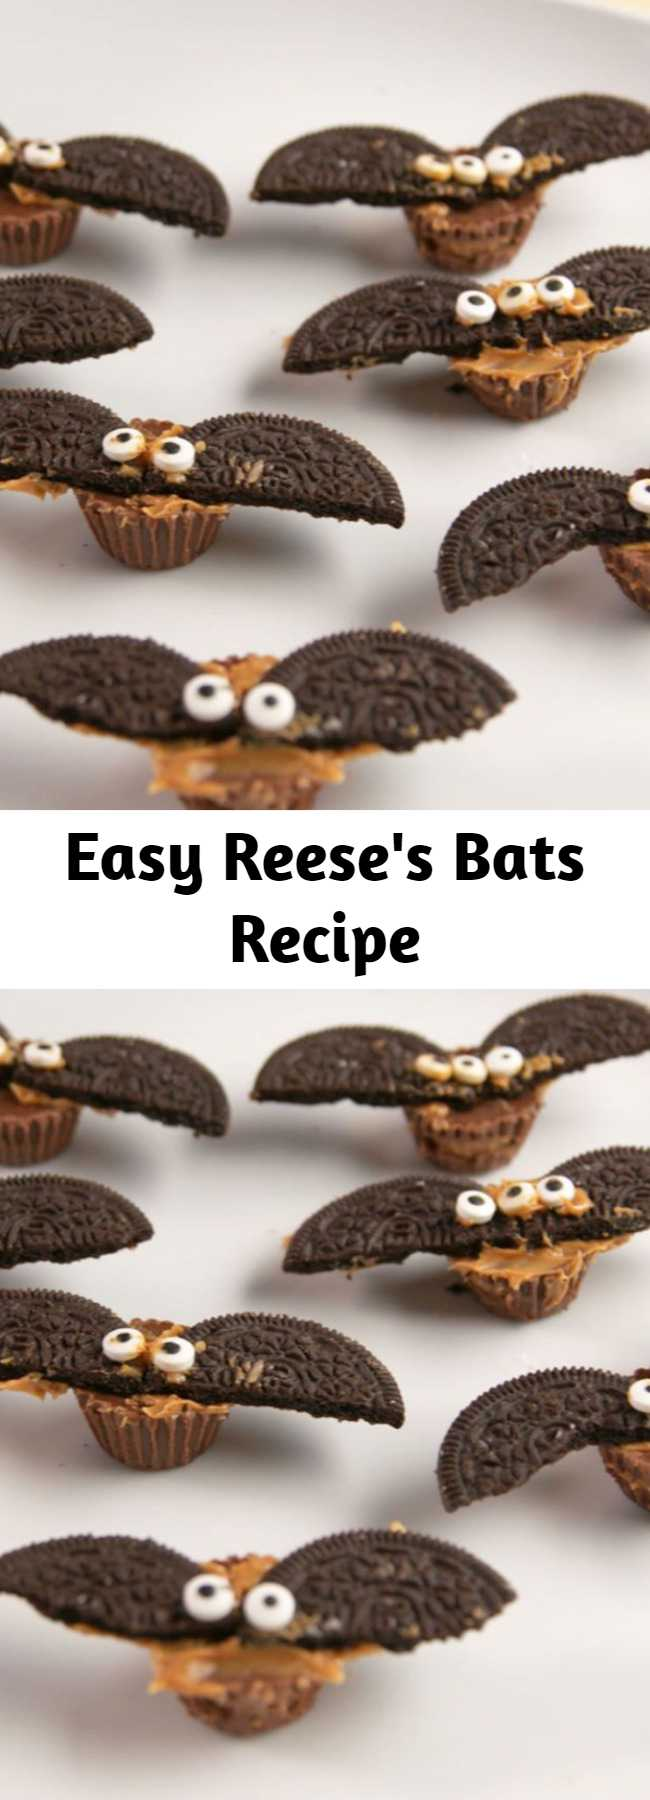 Easy Reese's Bats Recipe - These will fly away at your next Halloween party! #easy #recipe #reeses #bats #halloweenideas #halloween #halloweenfood #candy #chocolate #peanutbutter #oreo